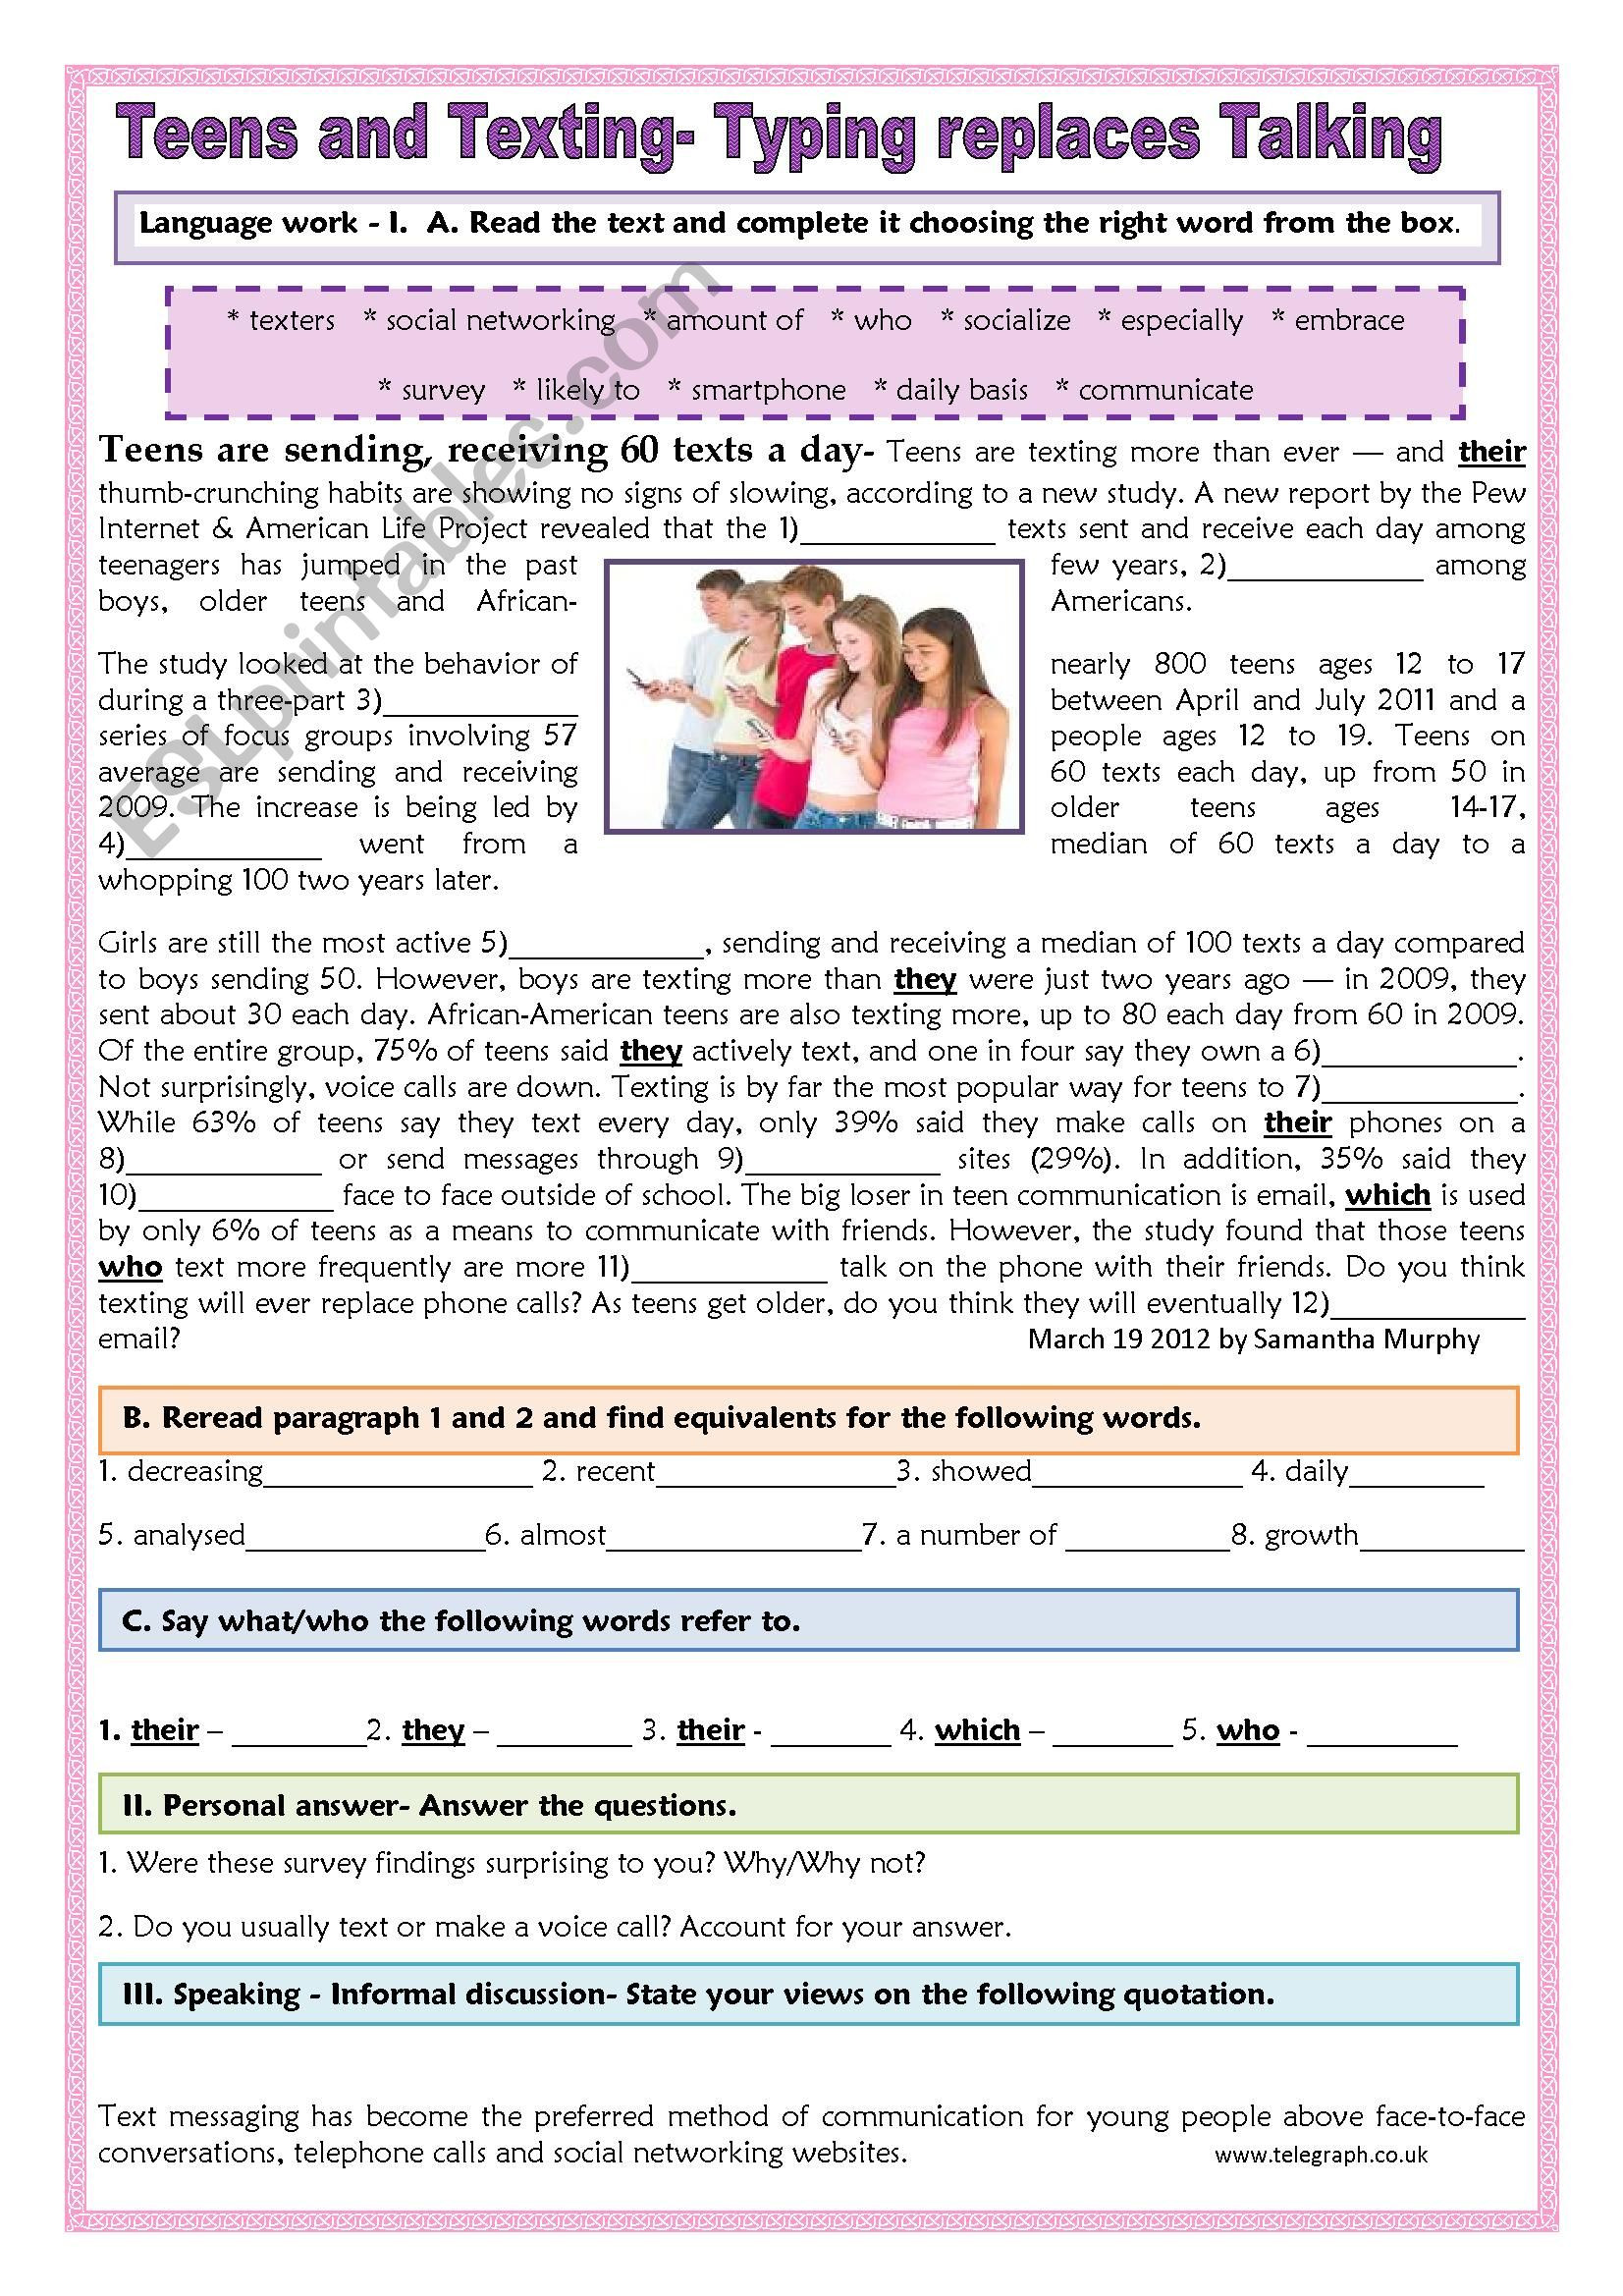 Printable Typing Worksheets Teens and Texting Typing Replaces Talking Esl Worksheet by